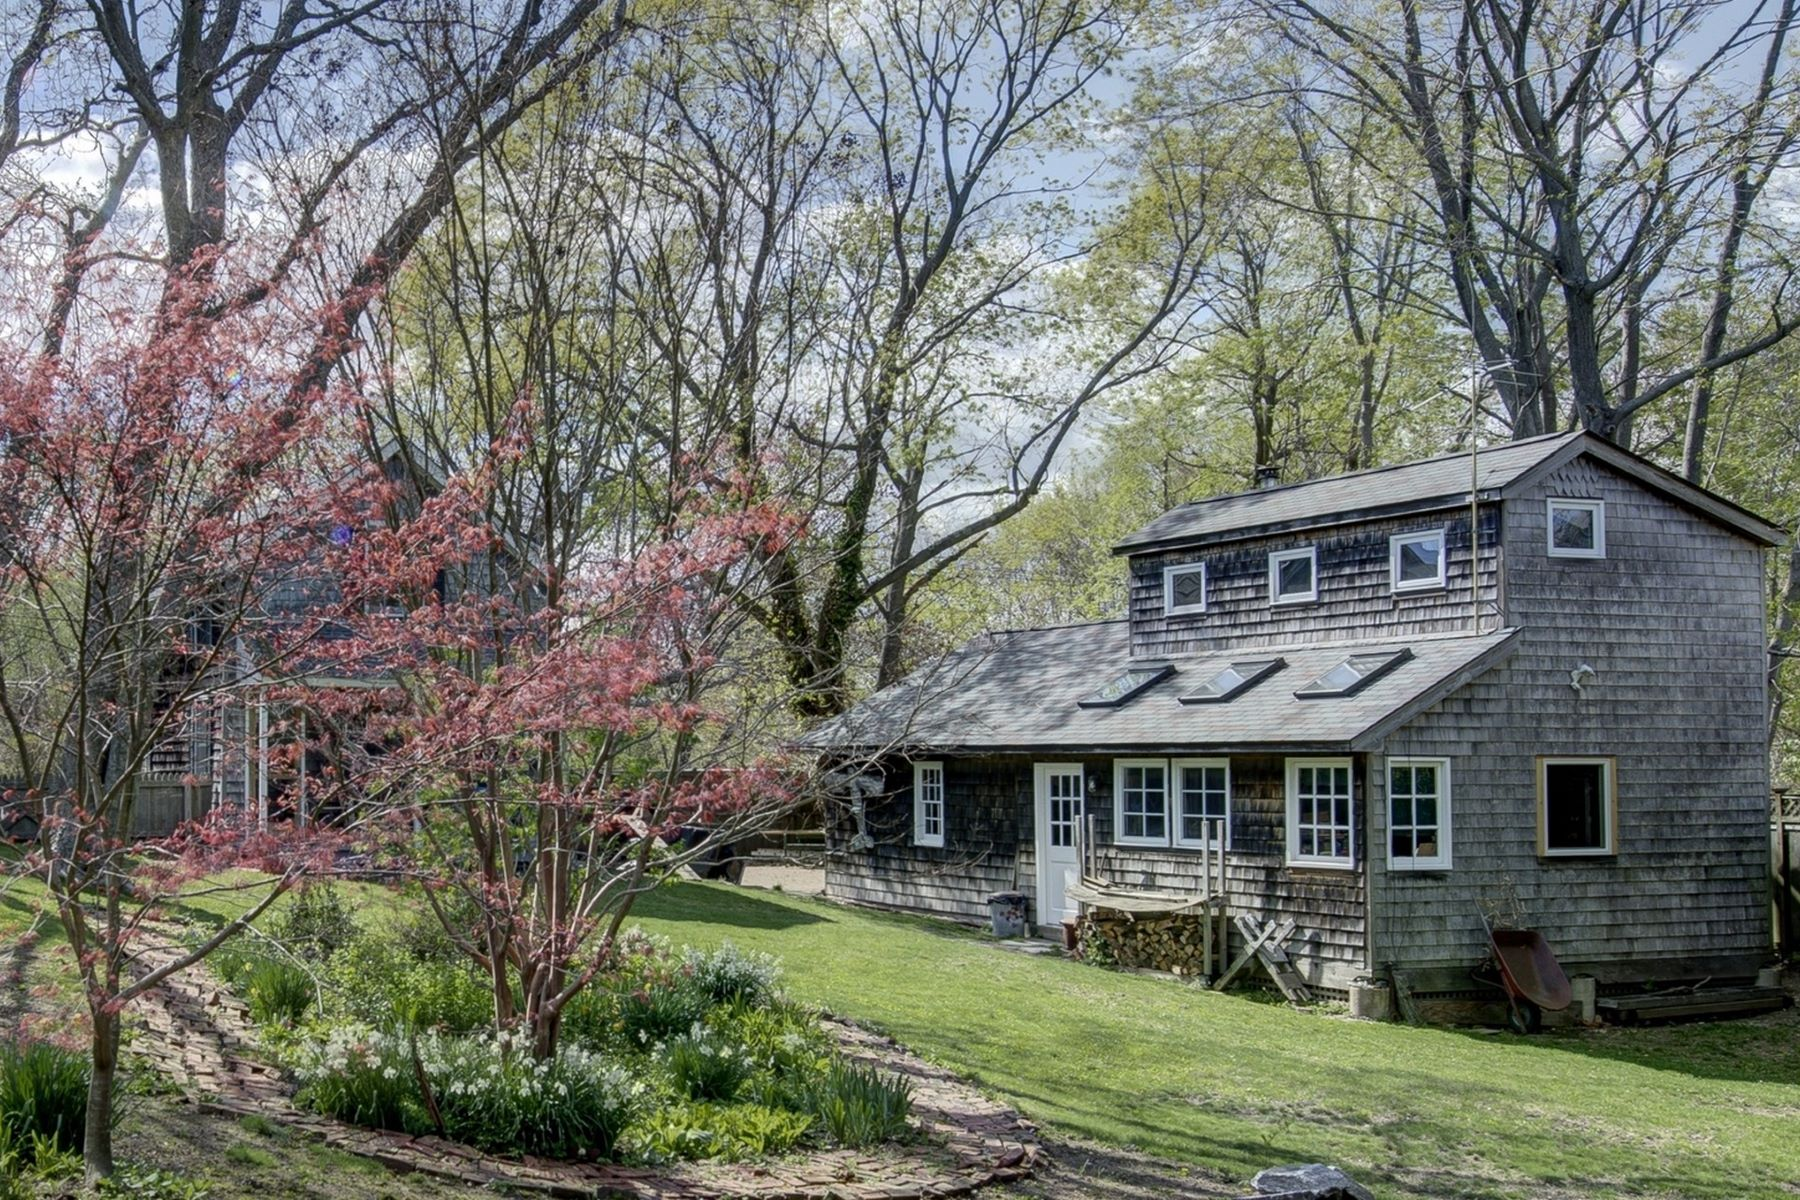 Single Family Home for Sale at 428 Kaplan Ave , Greenport, NY 11944 428 Kaplan Ave Greenport, New York 11944 United States